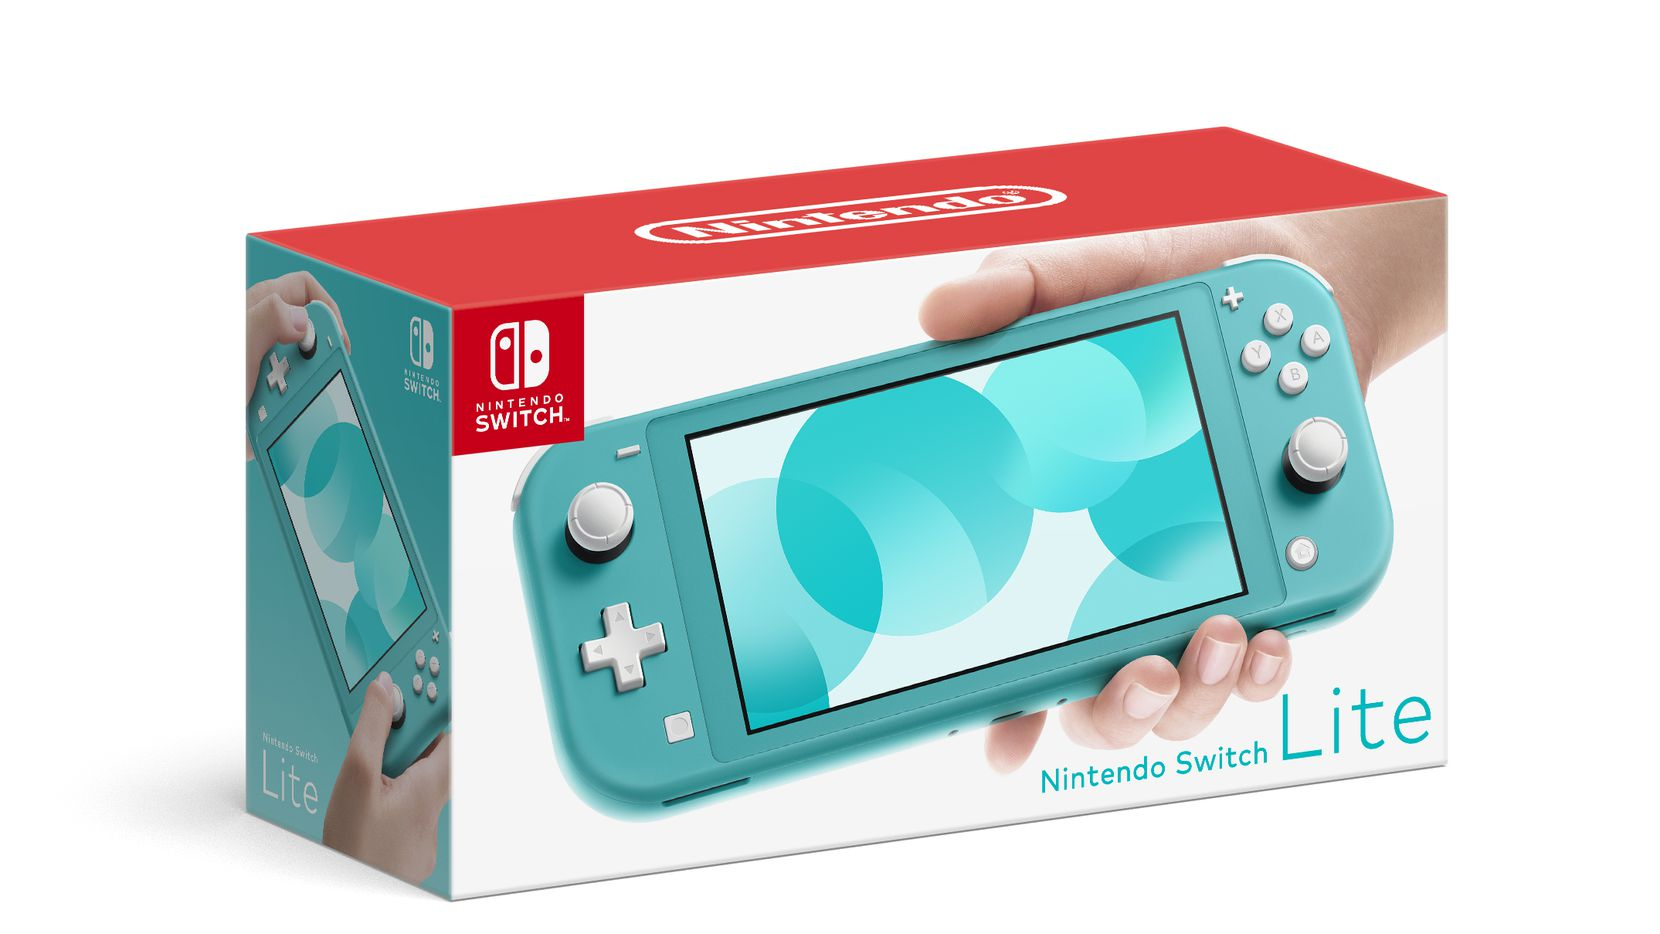 The box for a turquoise-colored Nintendo Switch Lite.